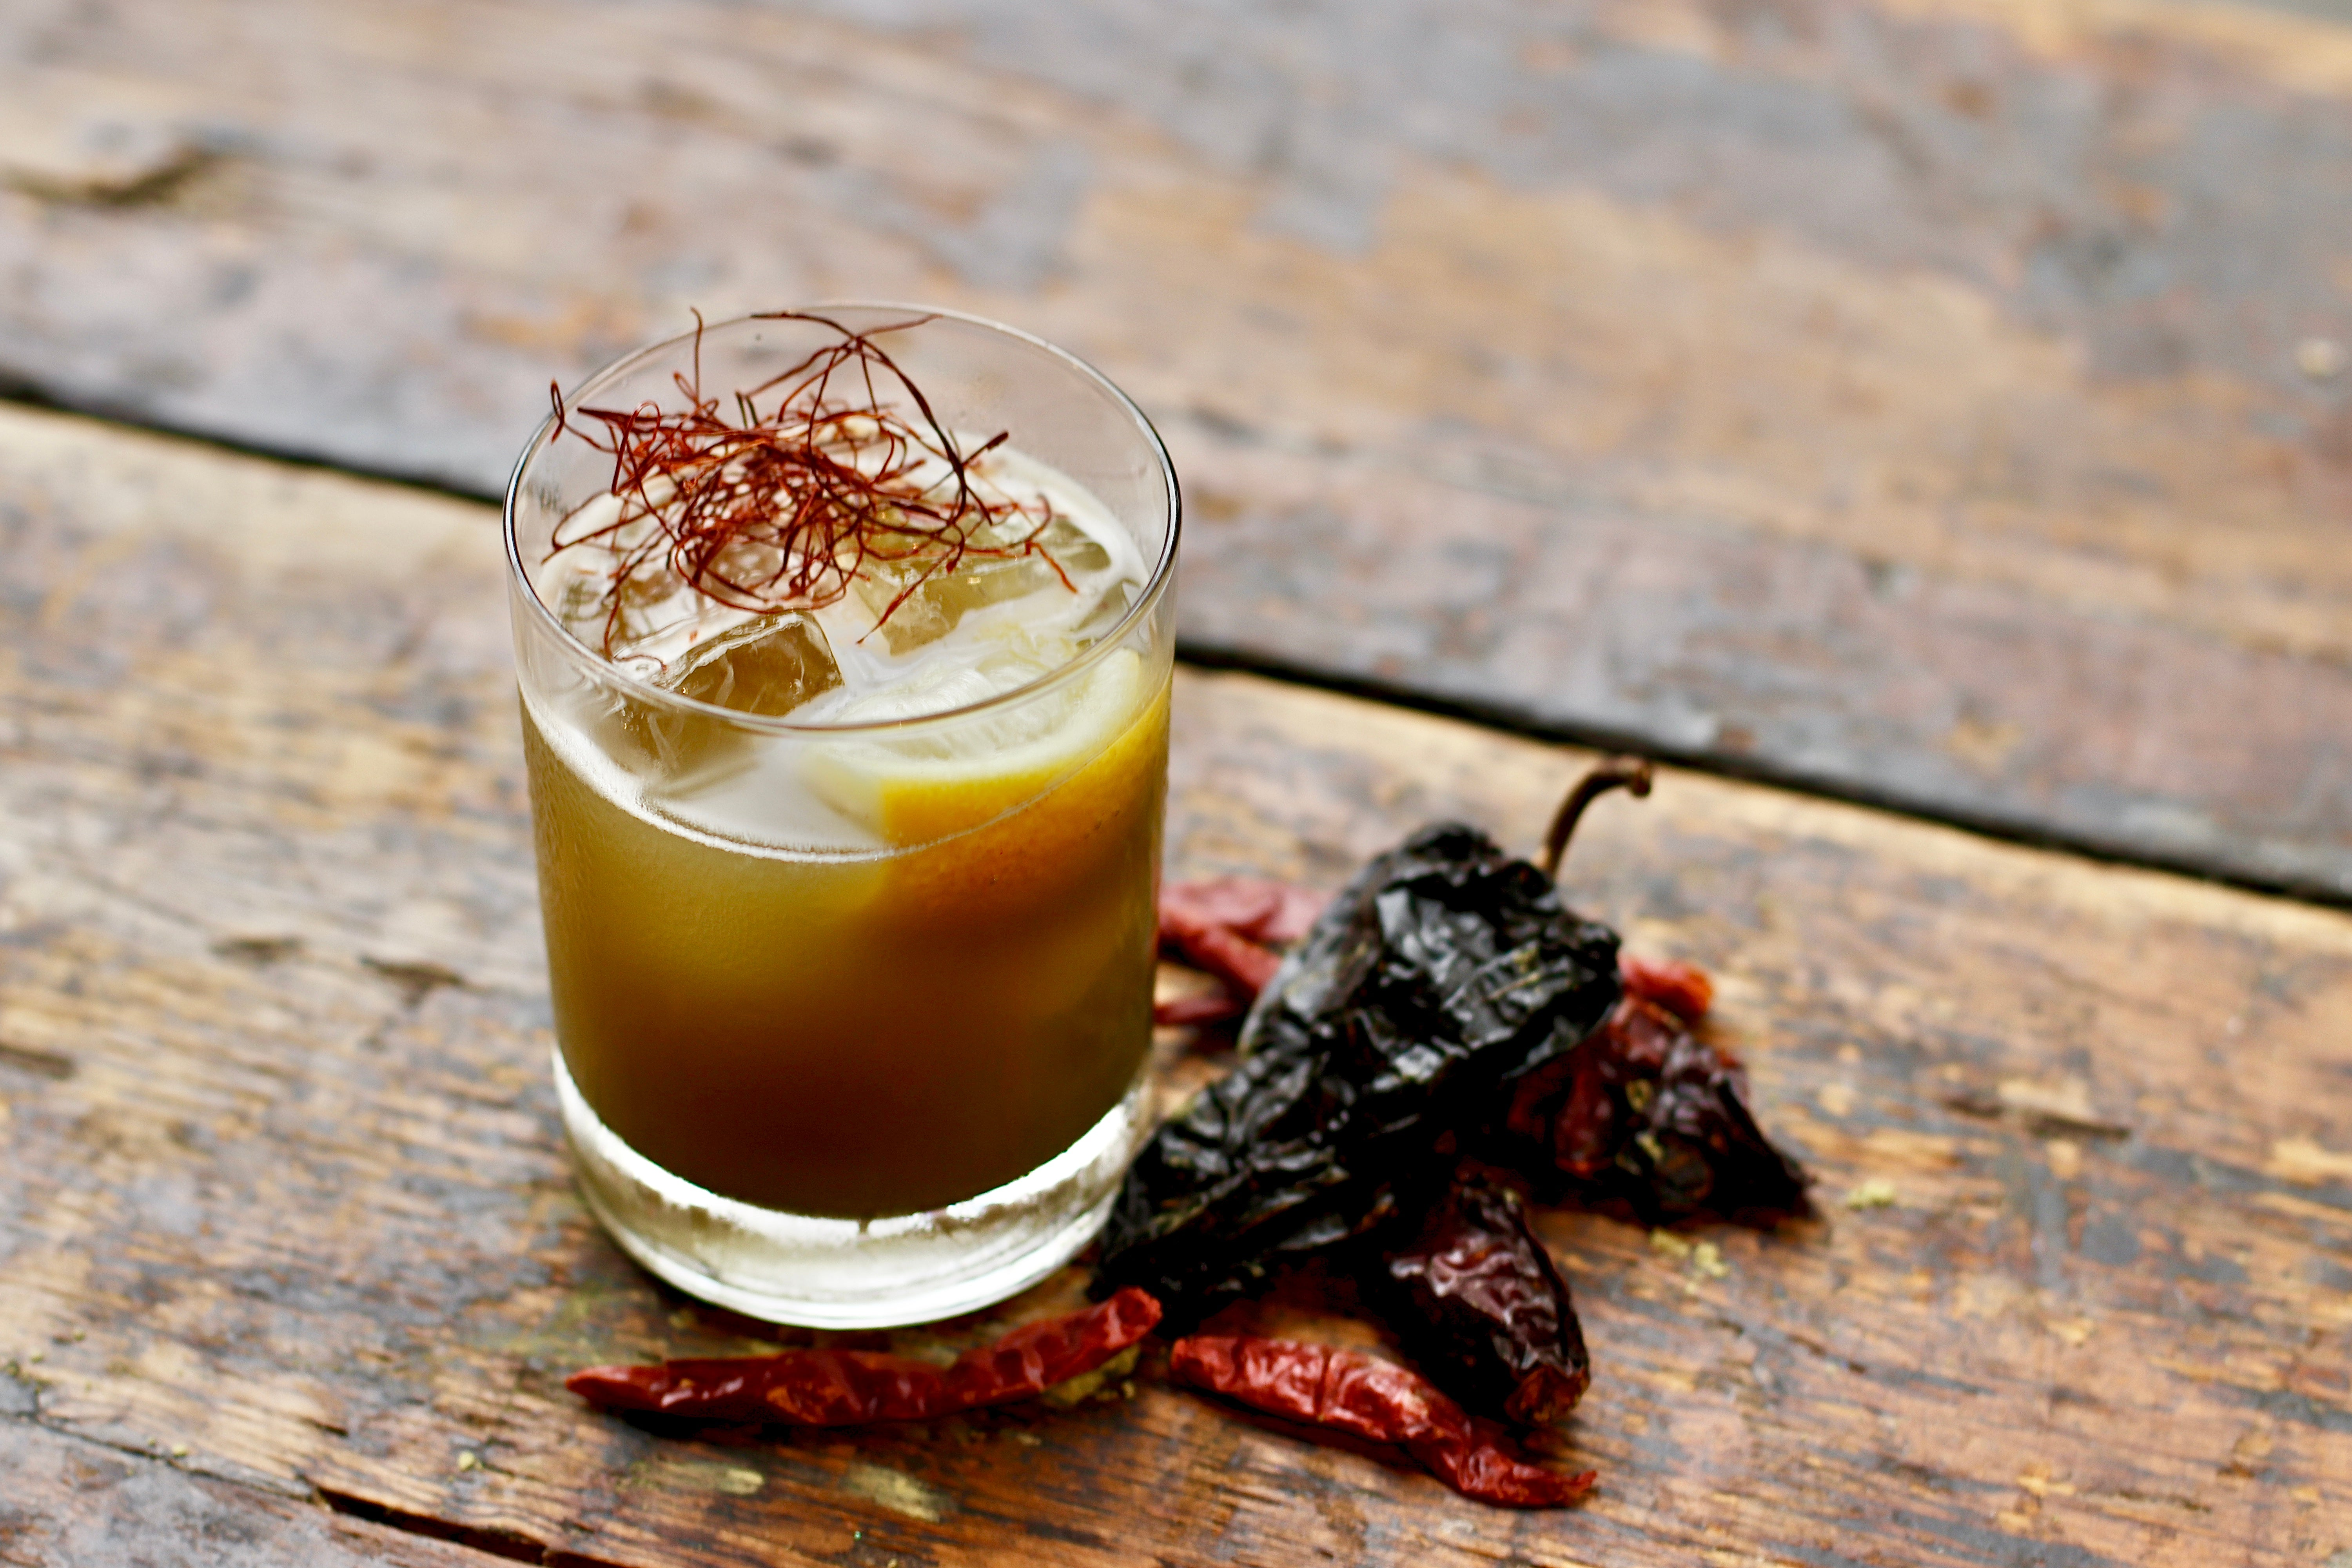 Cocktail Trends 2020.Fall Cocktail Trends For Seasonal Alcoholic Drinks 2019